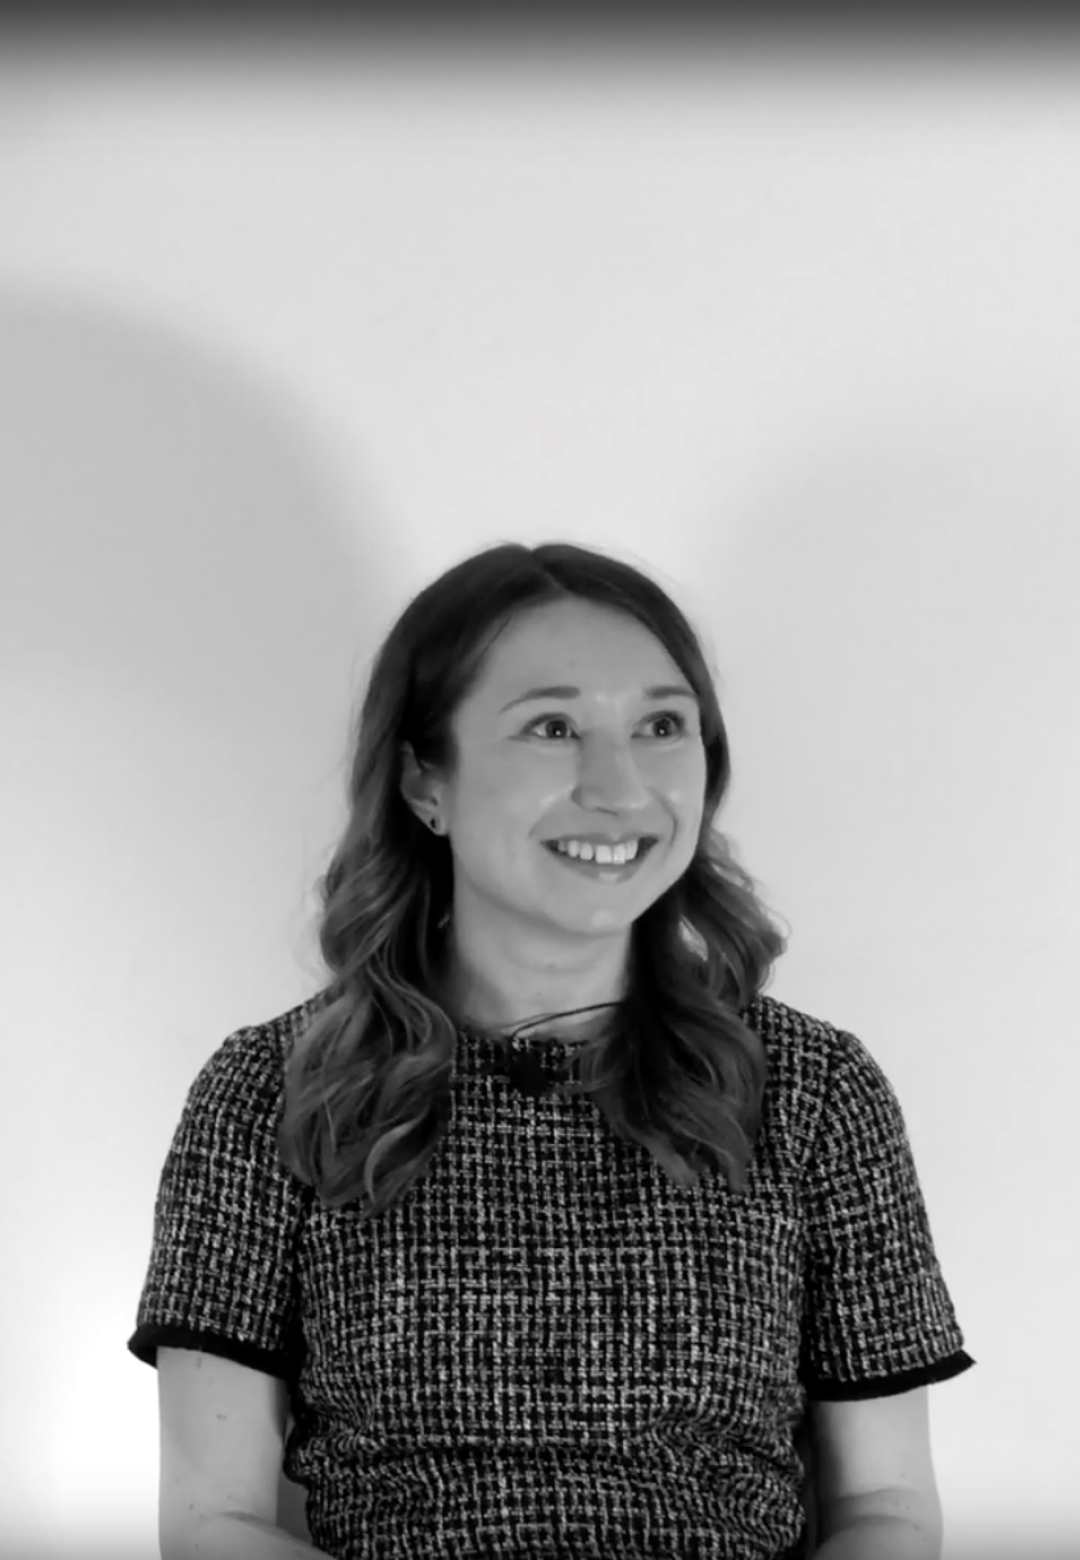 An interview with Rachael Nicholls, from dpa lighting consultants, for Women in Lighting| Rachael Nicholls| DPA| Women in Lighting| Light Collective| STIR